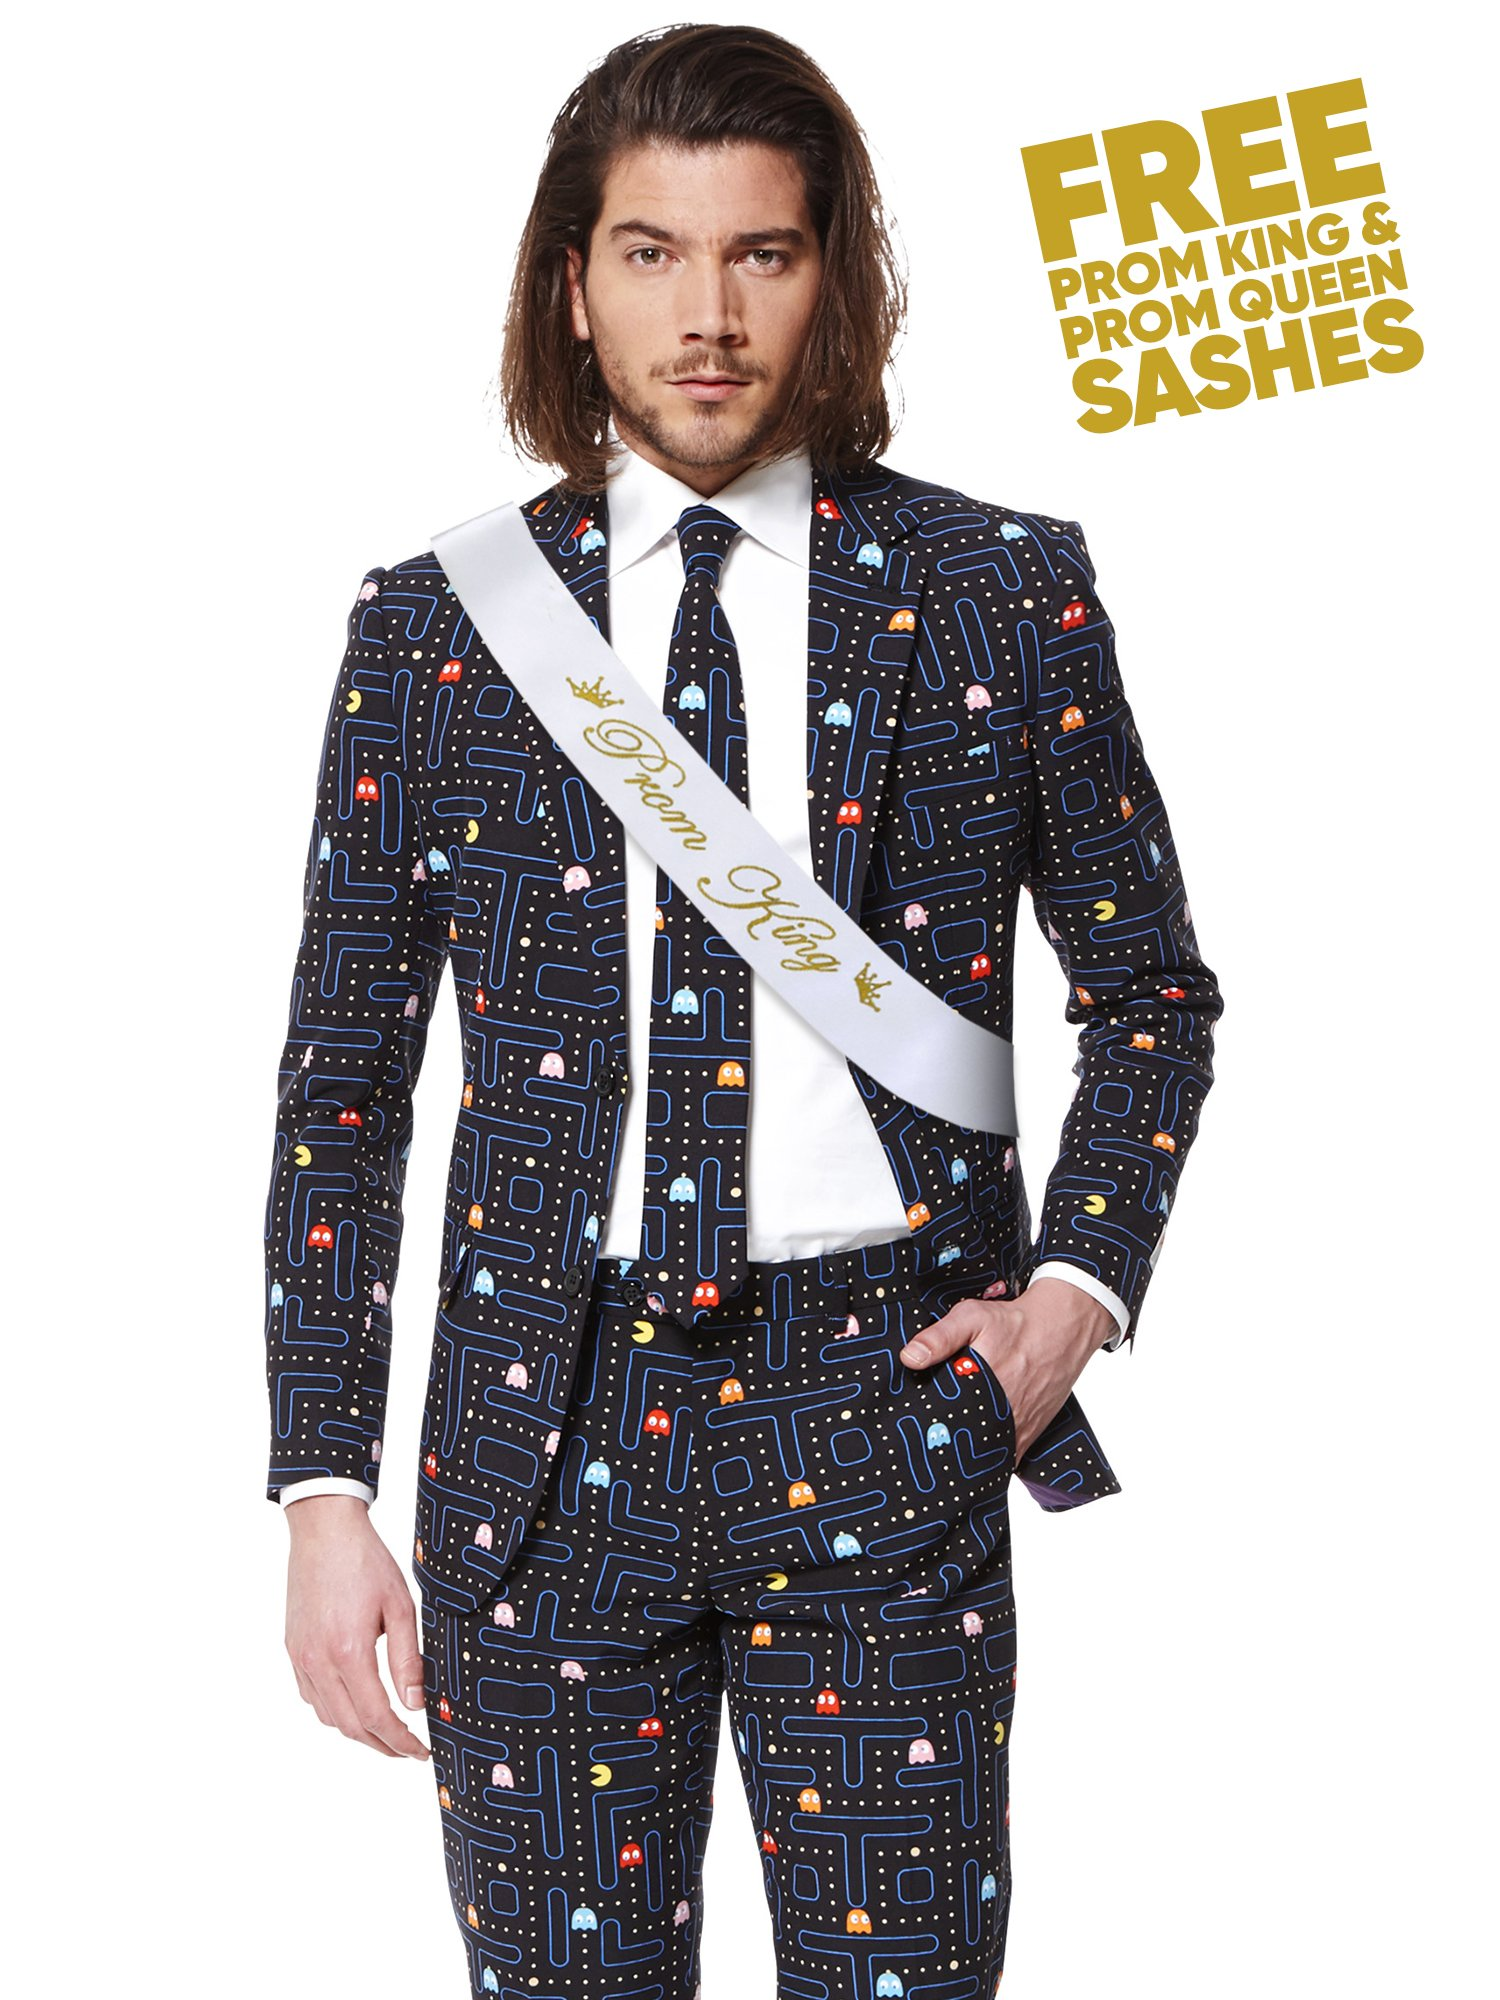 Opposuits Fancy Colored Suit For Men Now With Free Prom King and Prom Queen Sash,Pac-manTM,US44